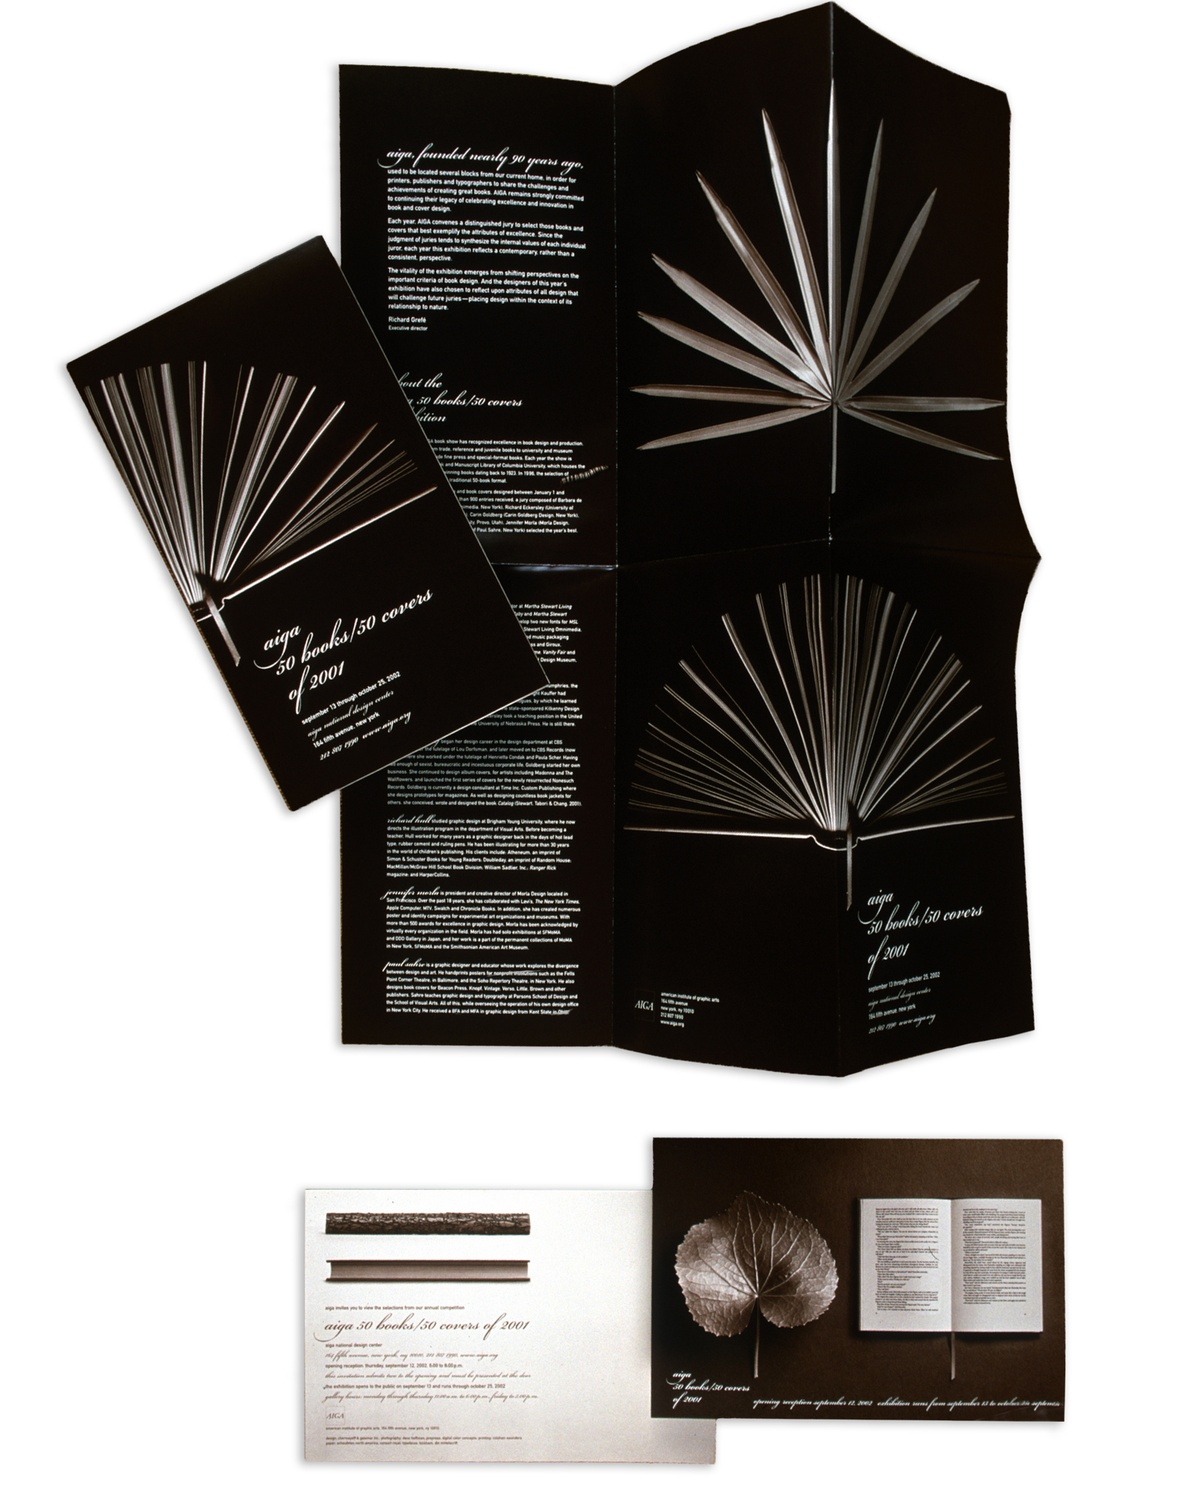 Project image 2 for Print Materials, American Institute of Graphic Arts